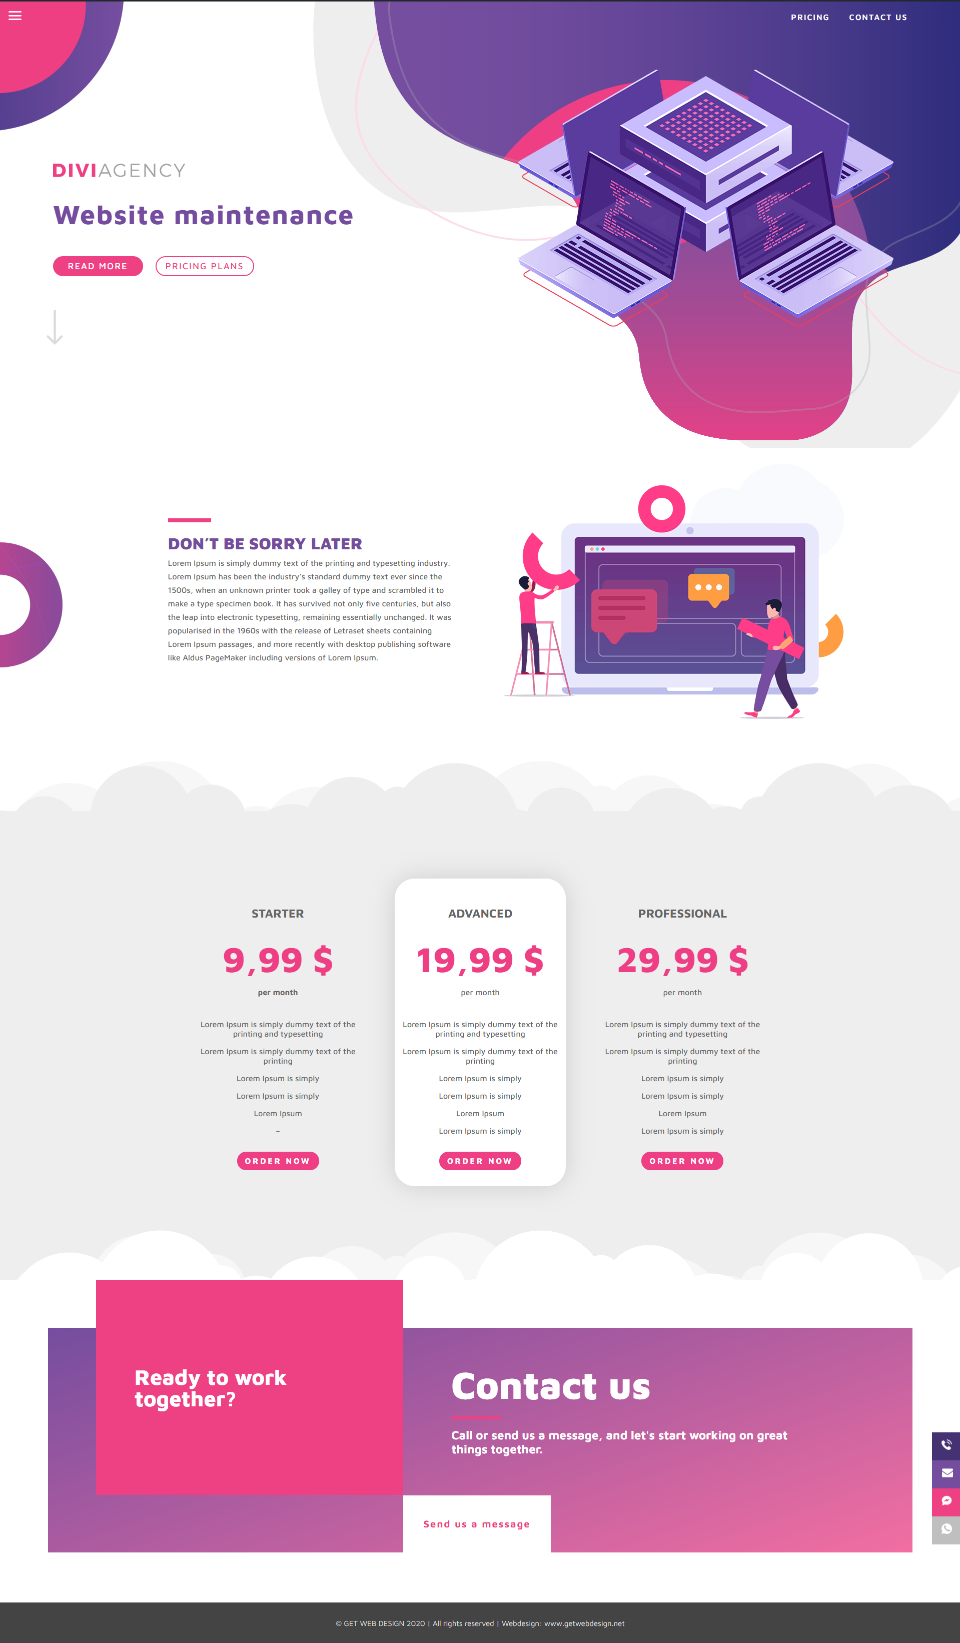 diviagency-child-theme-overview-12 DiviAgency Child Theme Overview